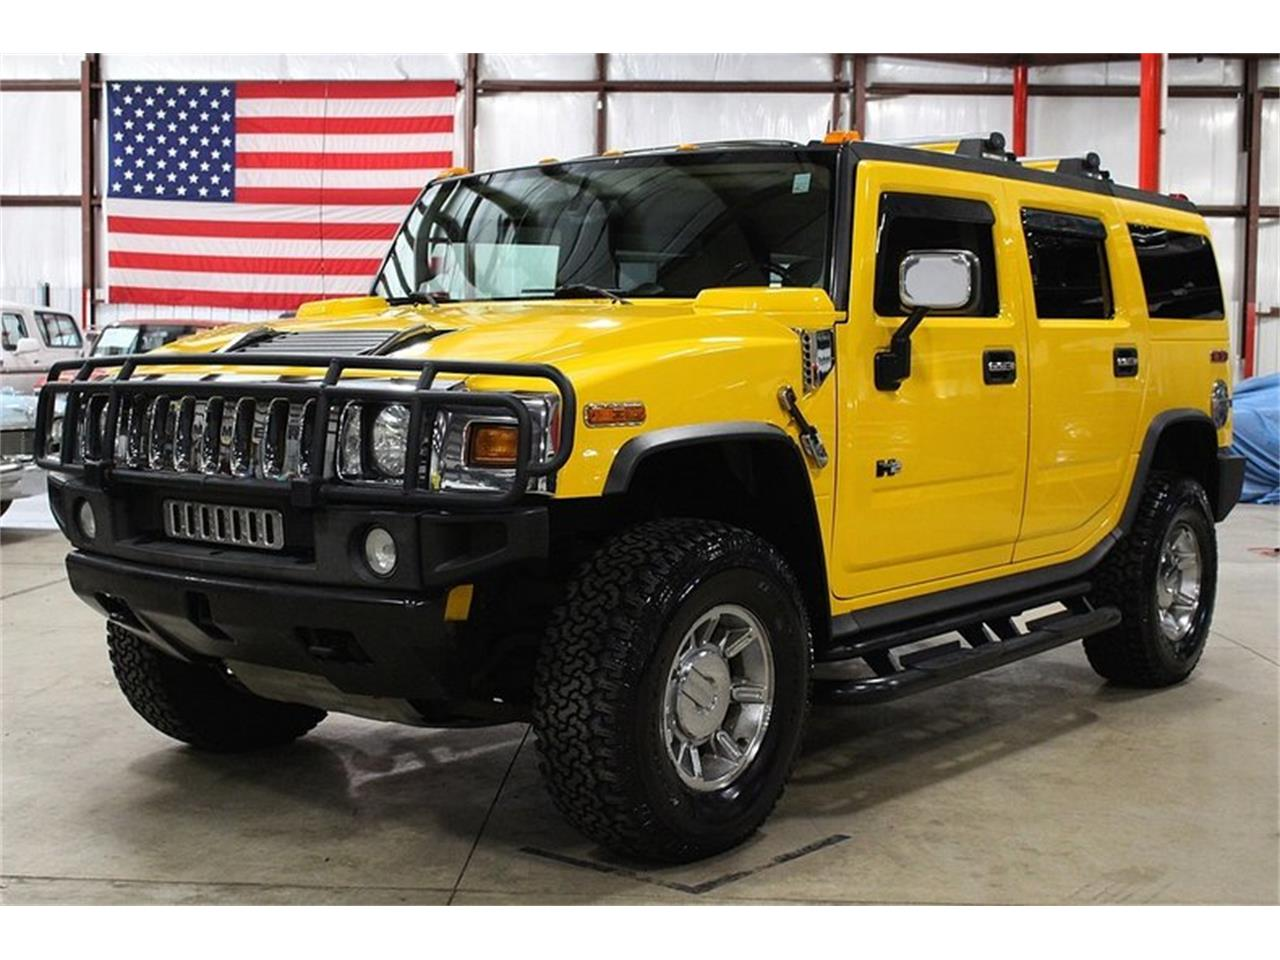 For Sale: 112 Hummer H12 in Kentwood, Michigan | h2 hummer for sale by owner